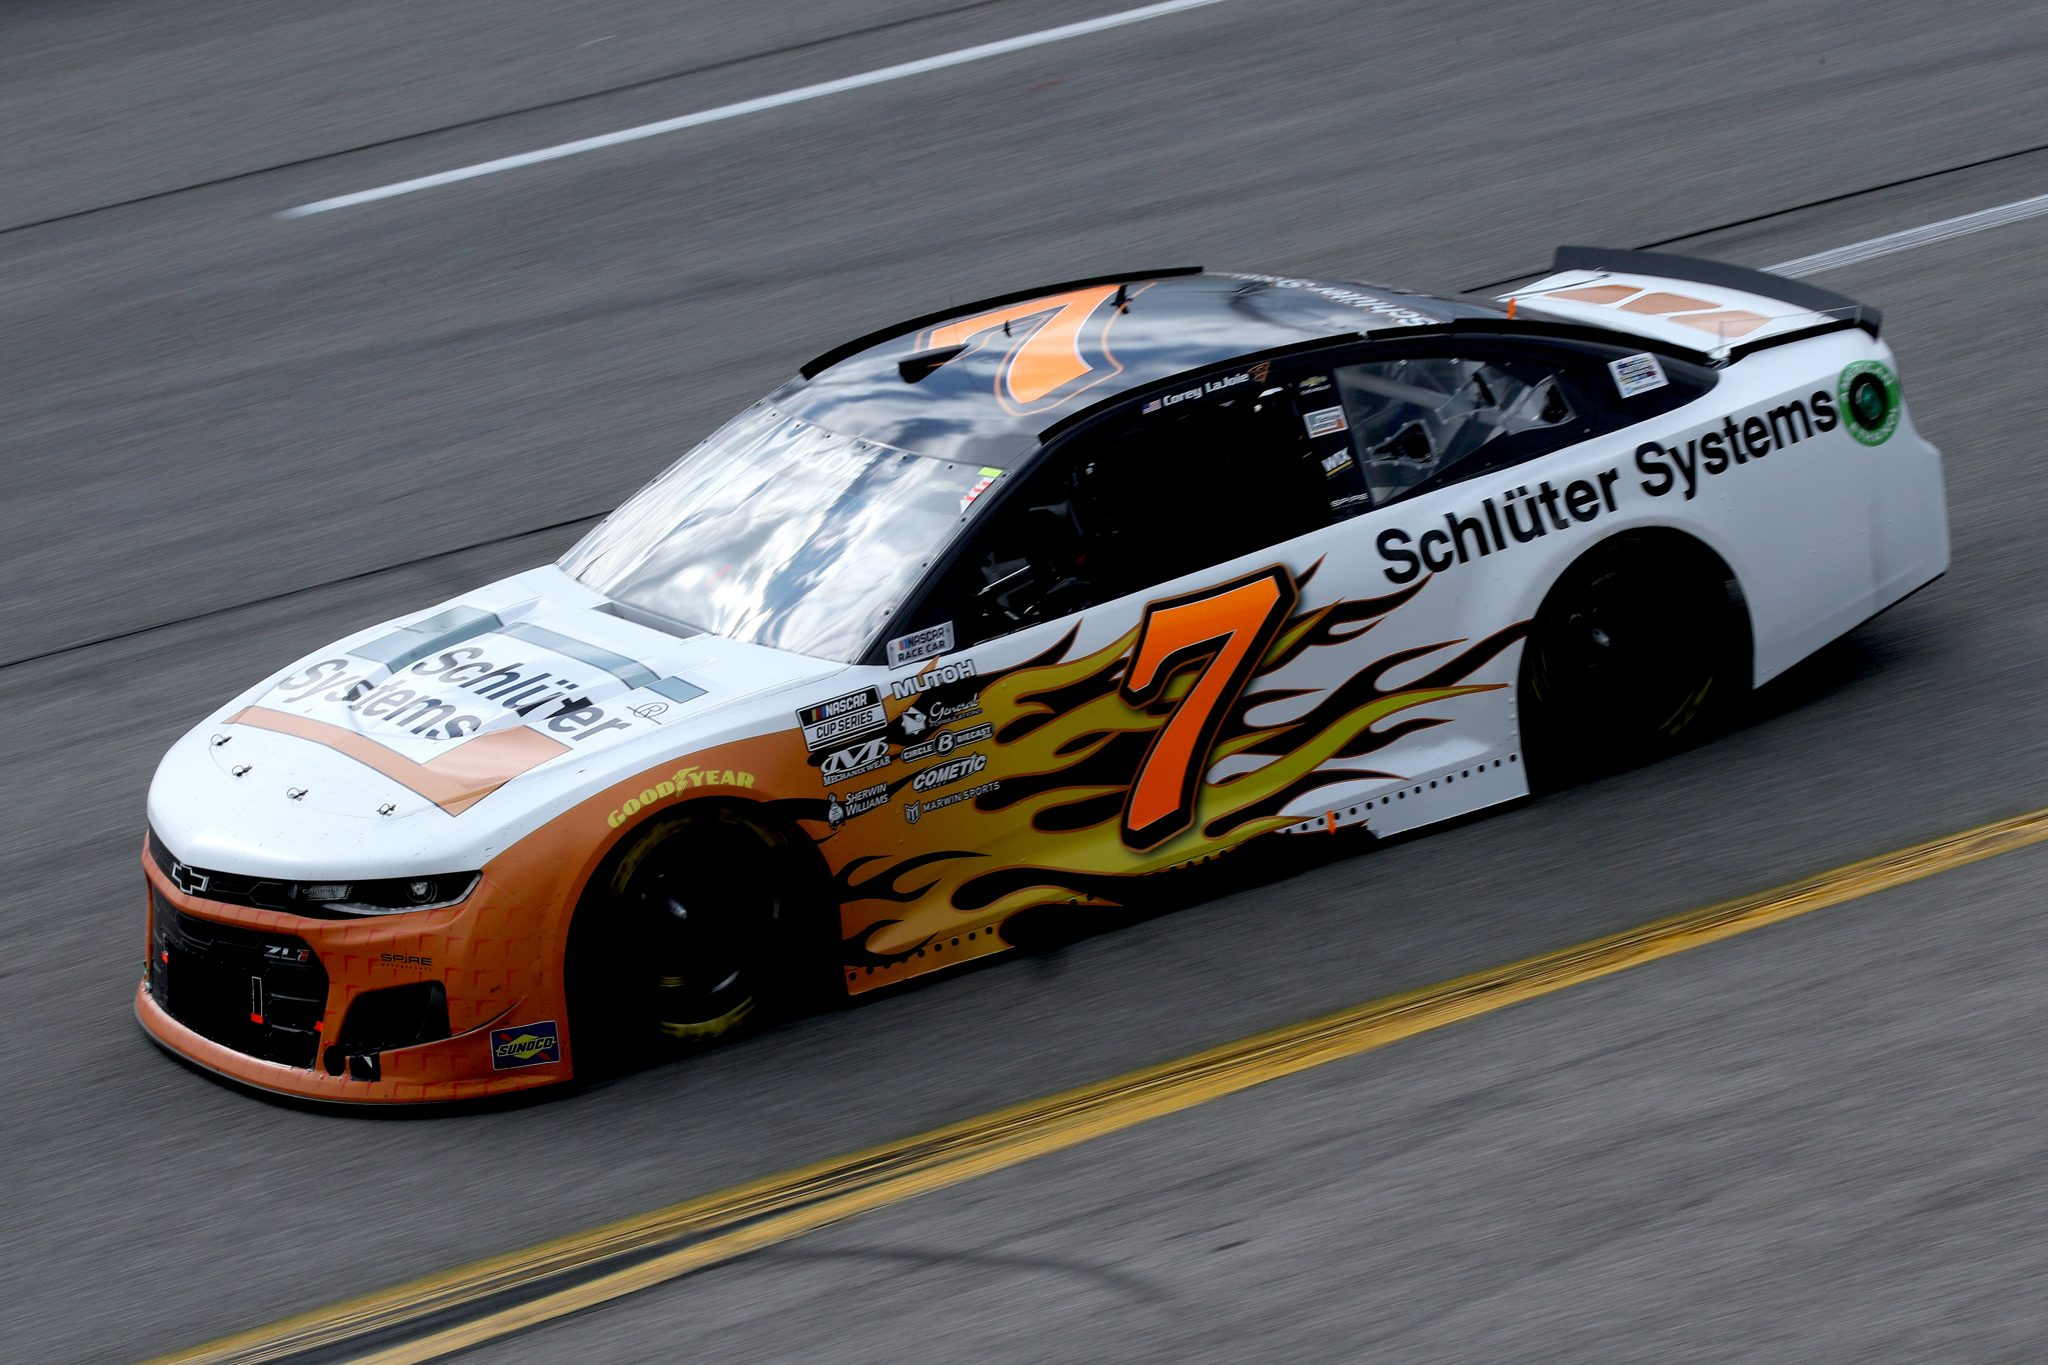 RICHMOND, VIRGINIA - APRIL 18: Corey LaJoie, driver of the #7 Schluter Systems Chevrolet, drives during the NASCAR Cup Series Toyota Owners 400 at Richmond Raceway on April 18, 2021 in Richmond, Virginia. (Photo by Sean Gardner/Getty Images) | Getty Images